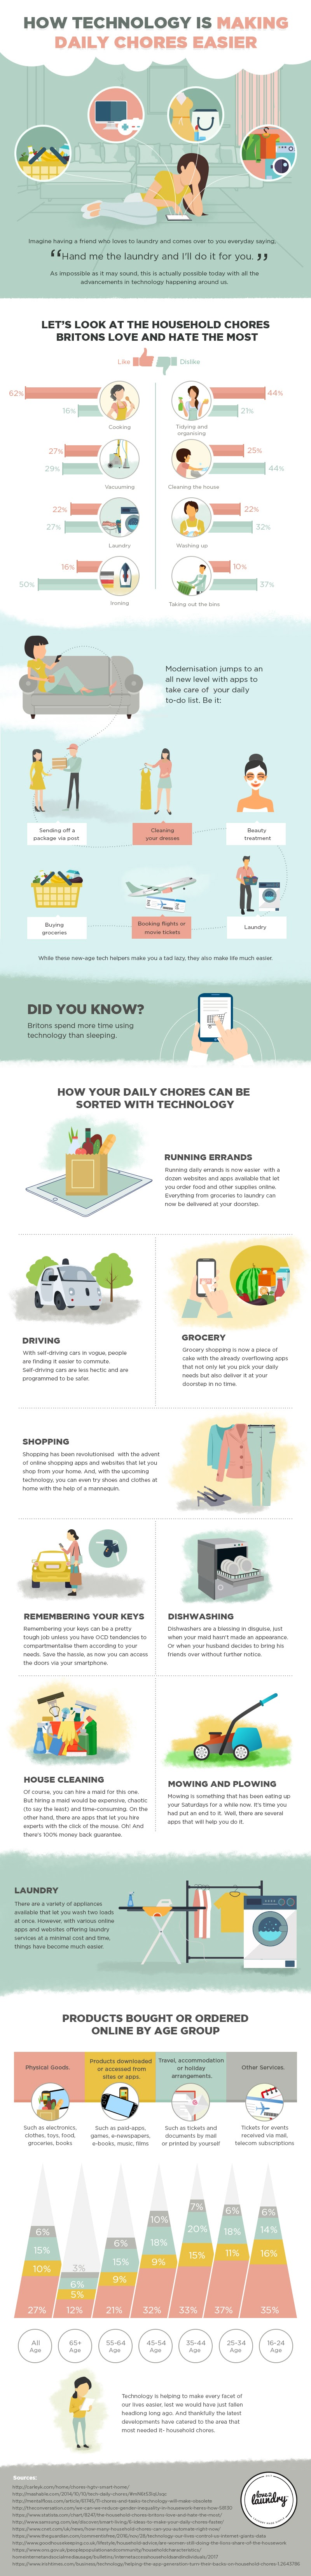 How technology is making everyday chores easier #infographic